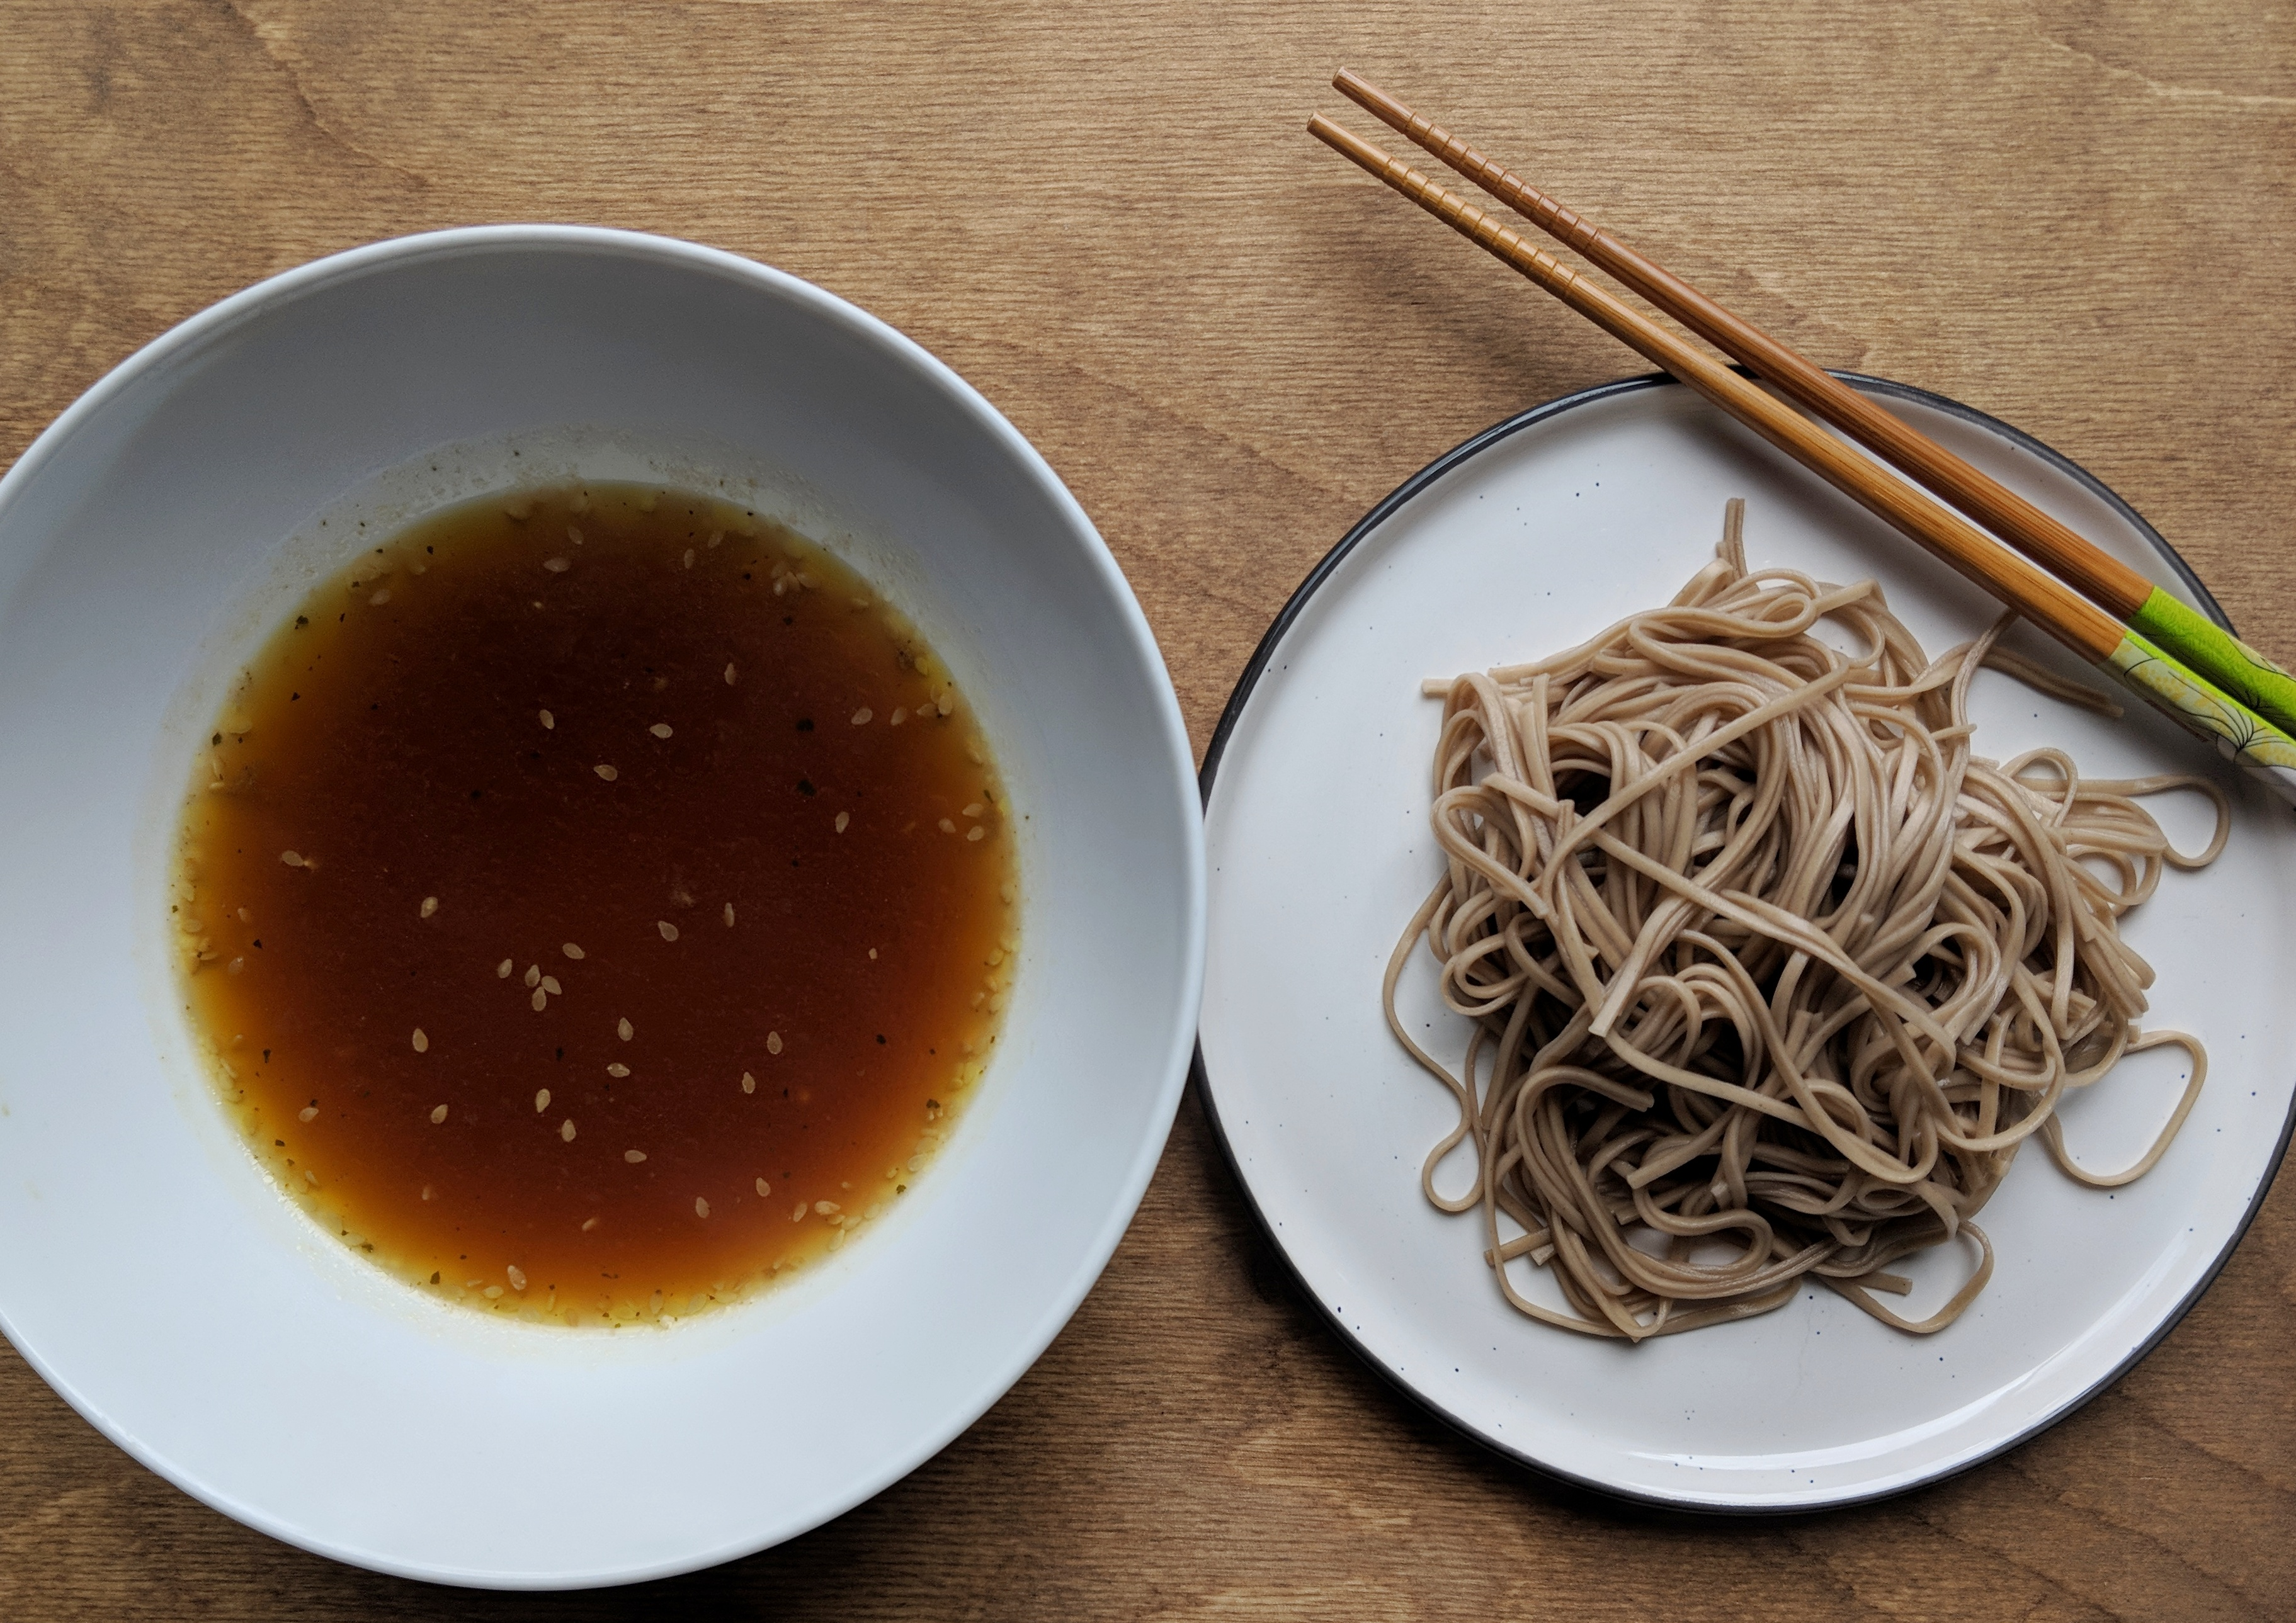 Buckwheat Soba Noodles with Dipping Sauce